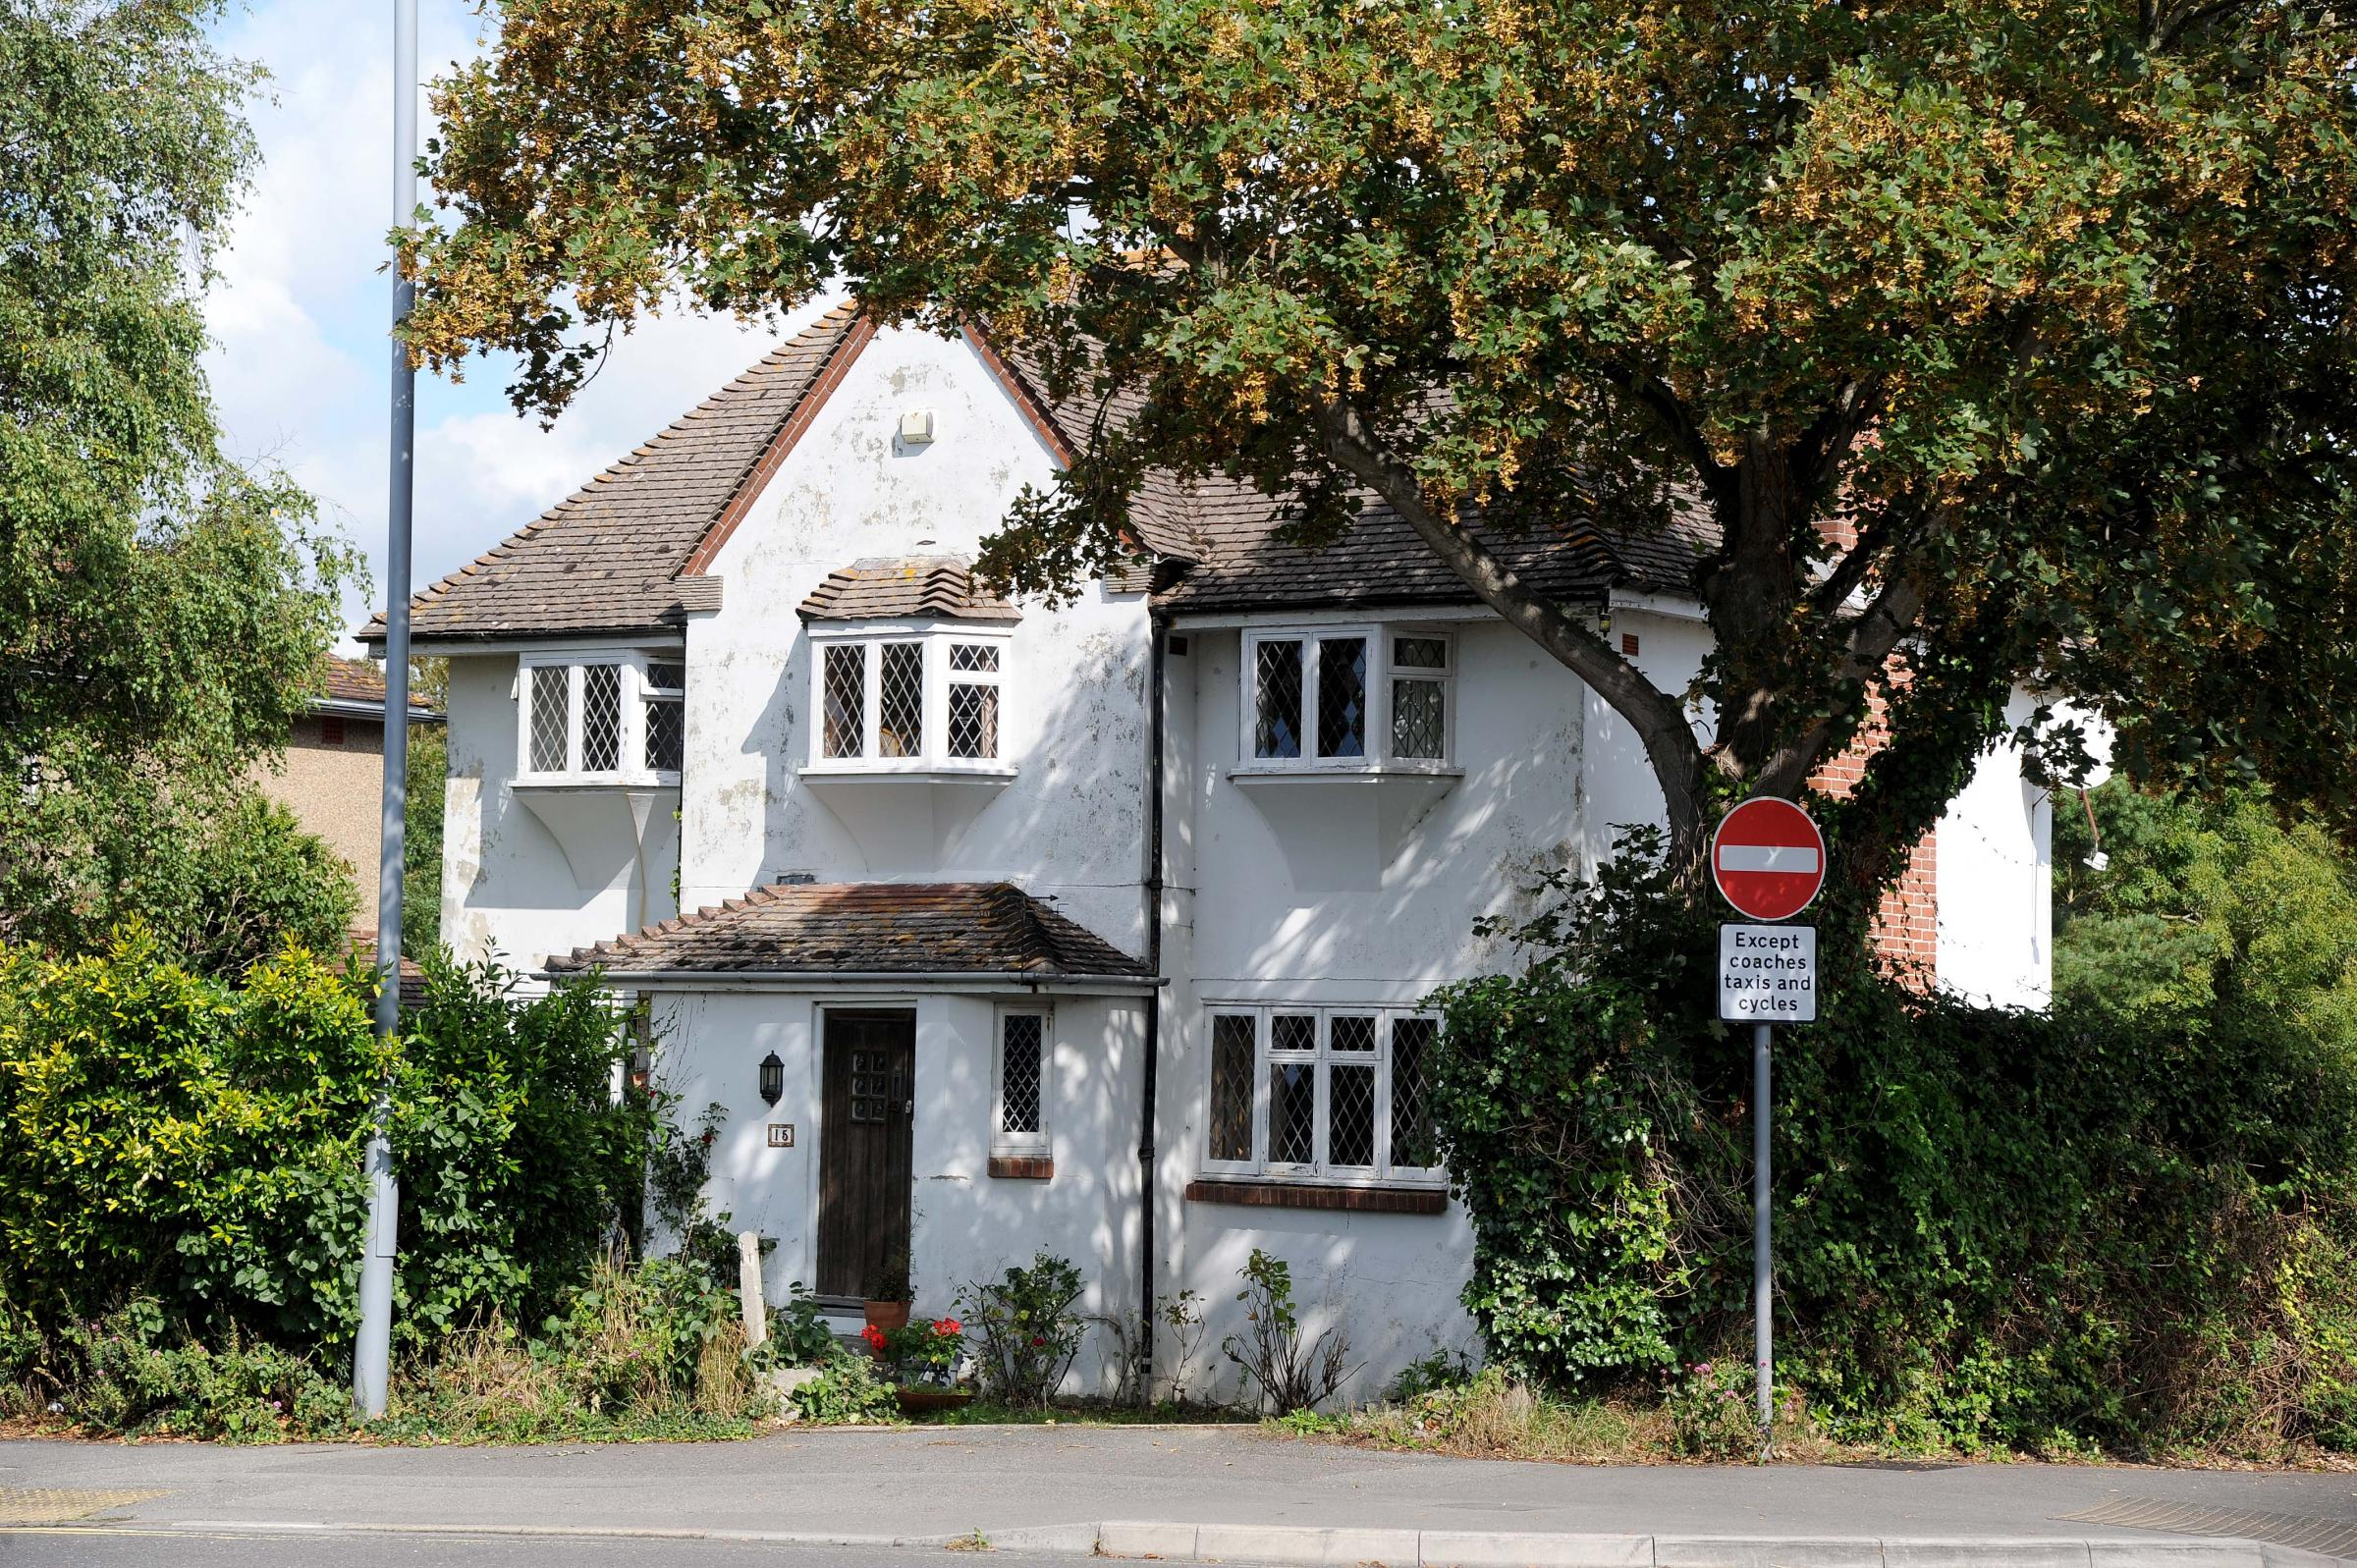 Plans for three homes in grounds of Weymouth house